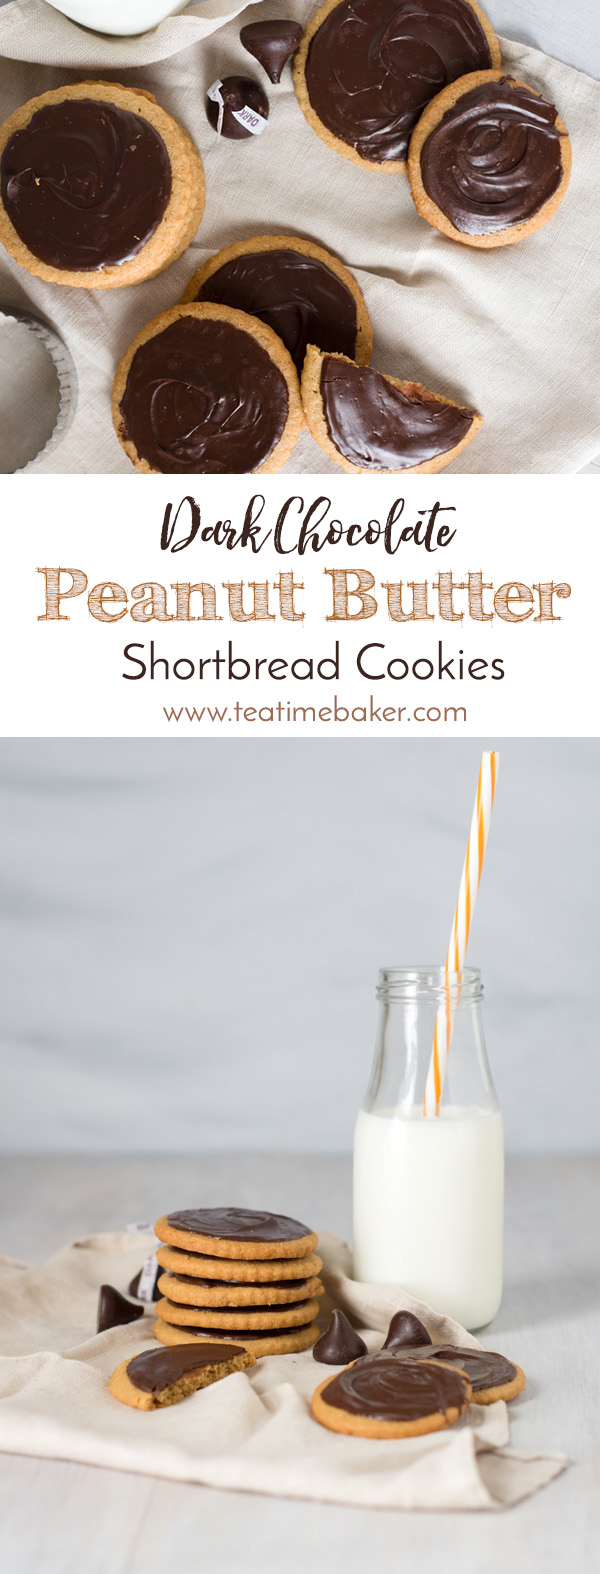 Dark Chocolate Peanut Butter Shortbread Cookies